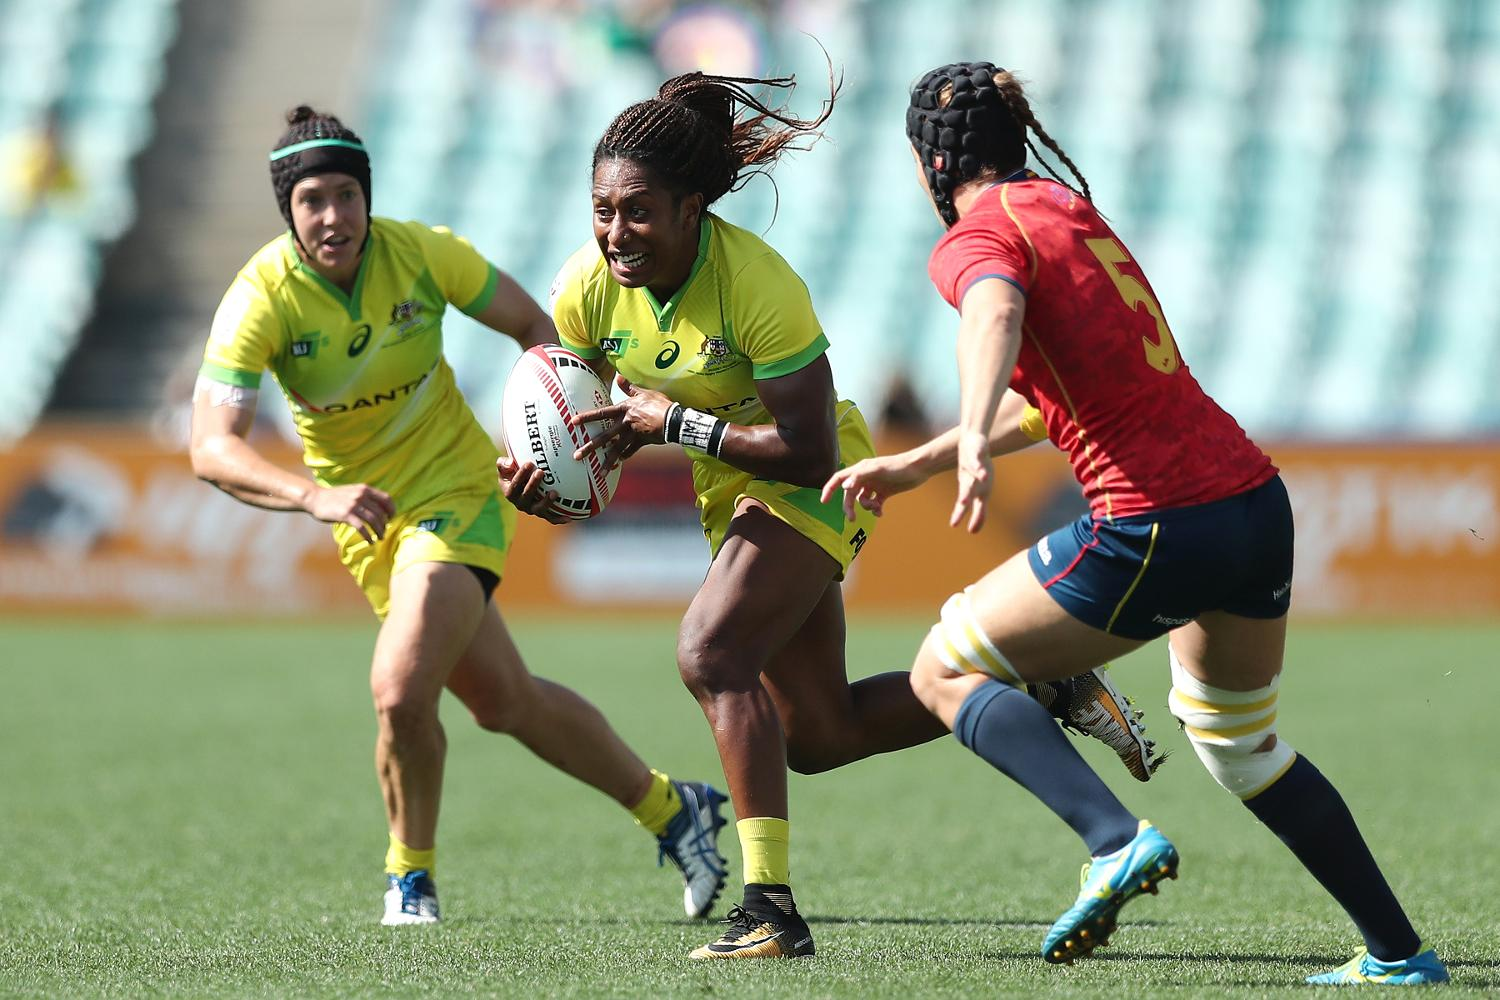 HSBC World Rugby Women's Sevens Series 2018 - Sydney Day 2